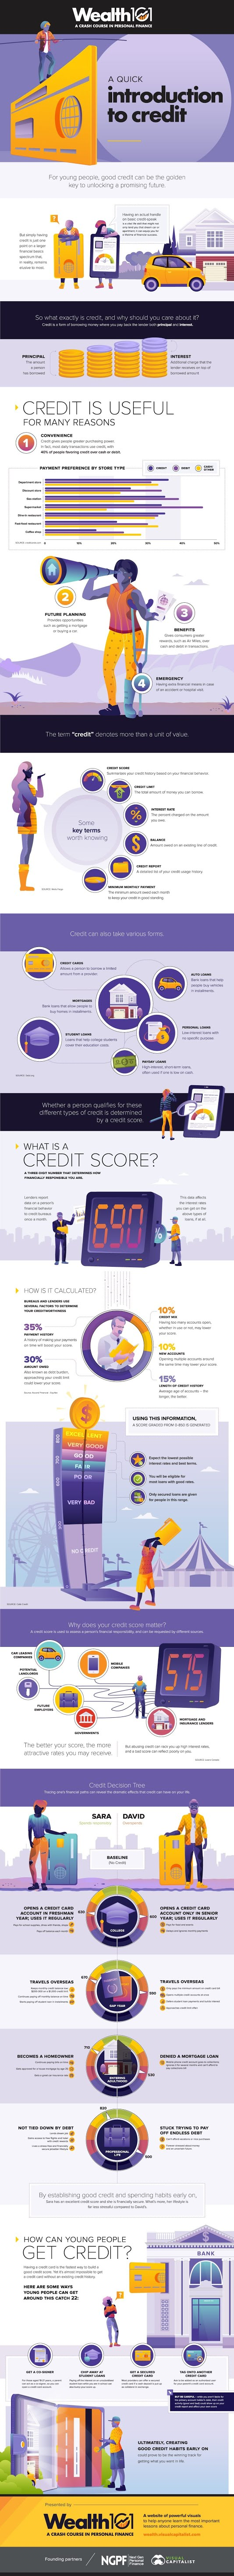 What are the young people who need credit? #infographic